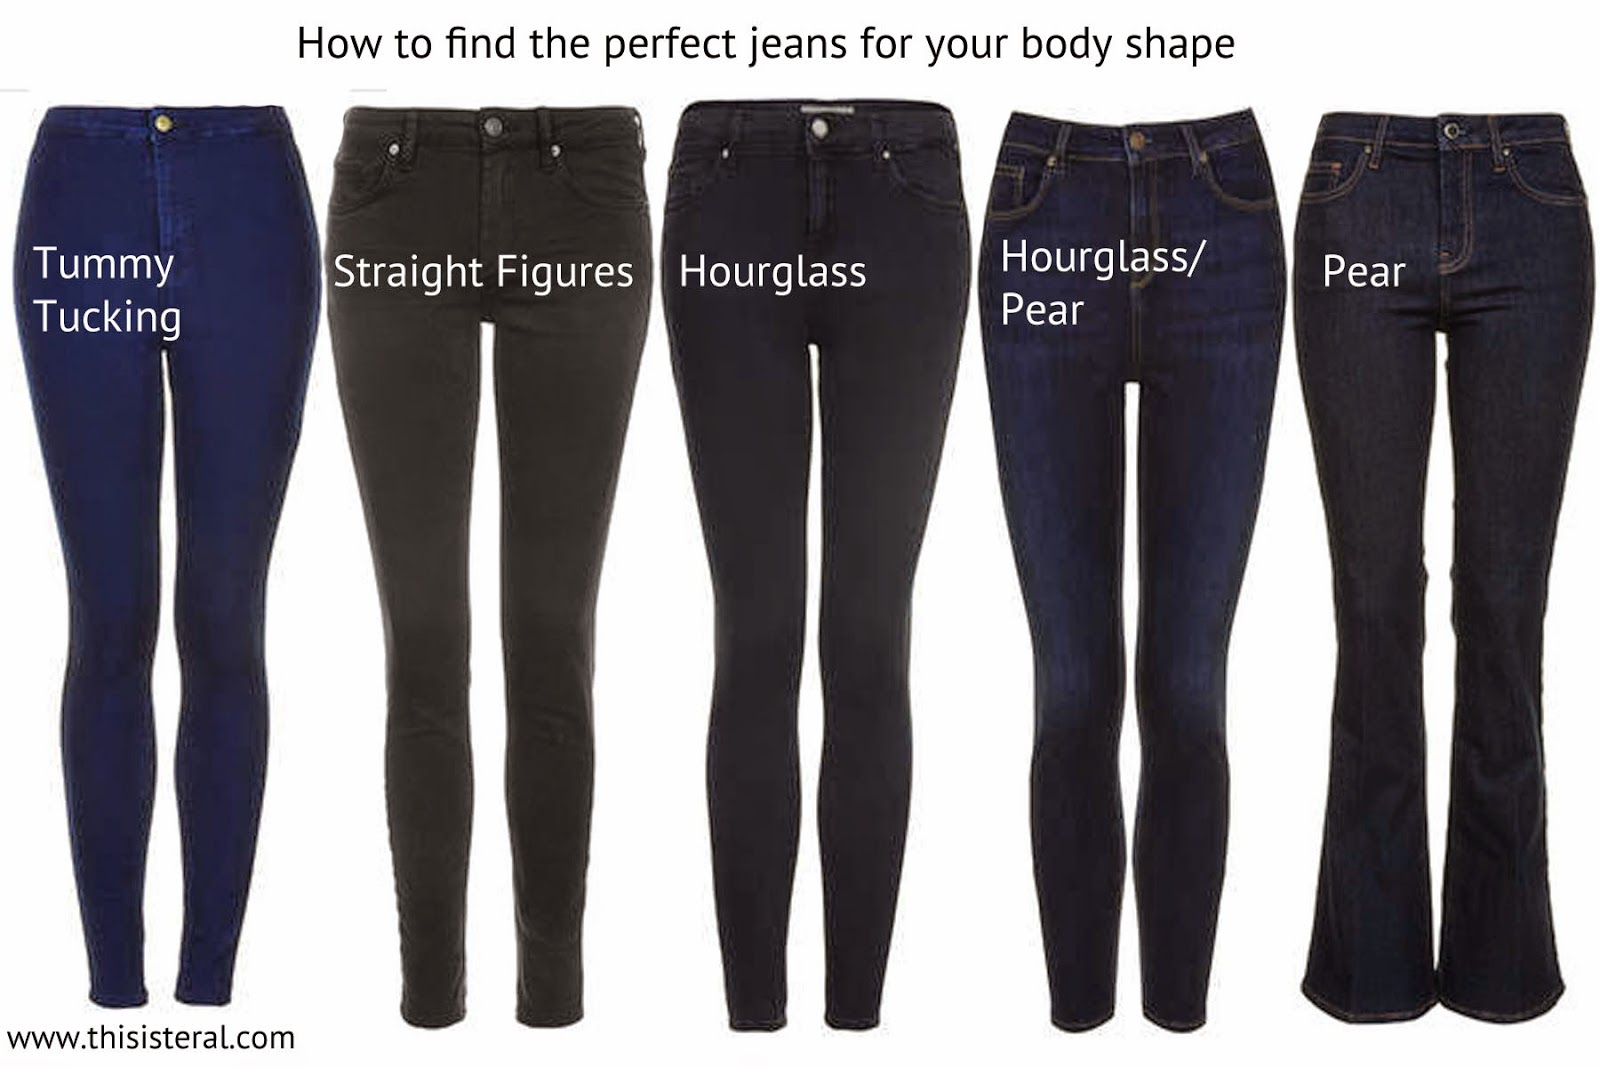 Finding The Perfect Jeans To Suit Your Body Shape